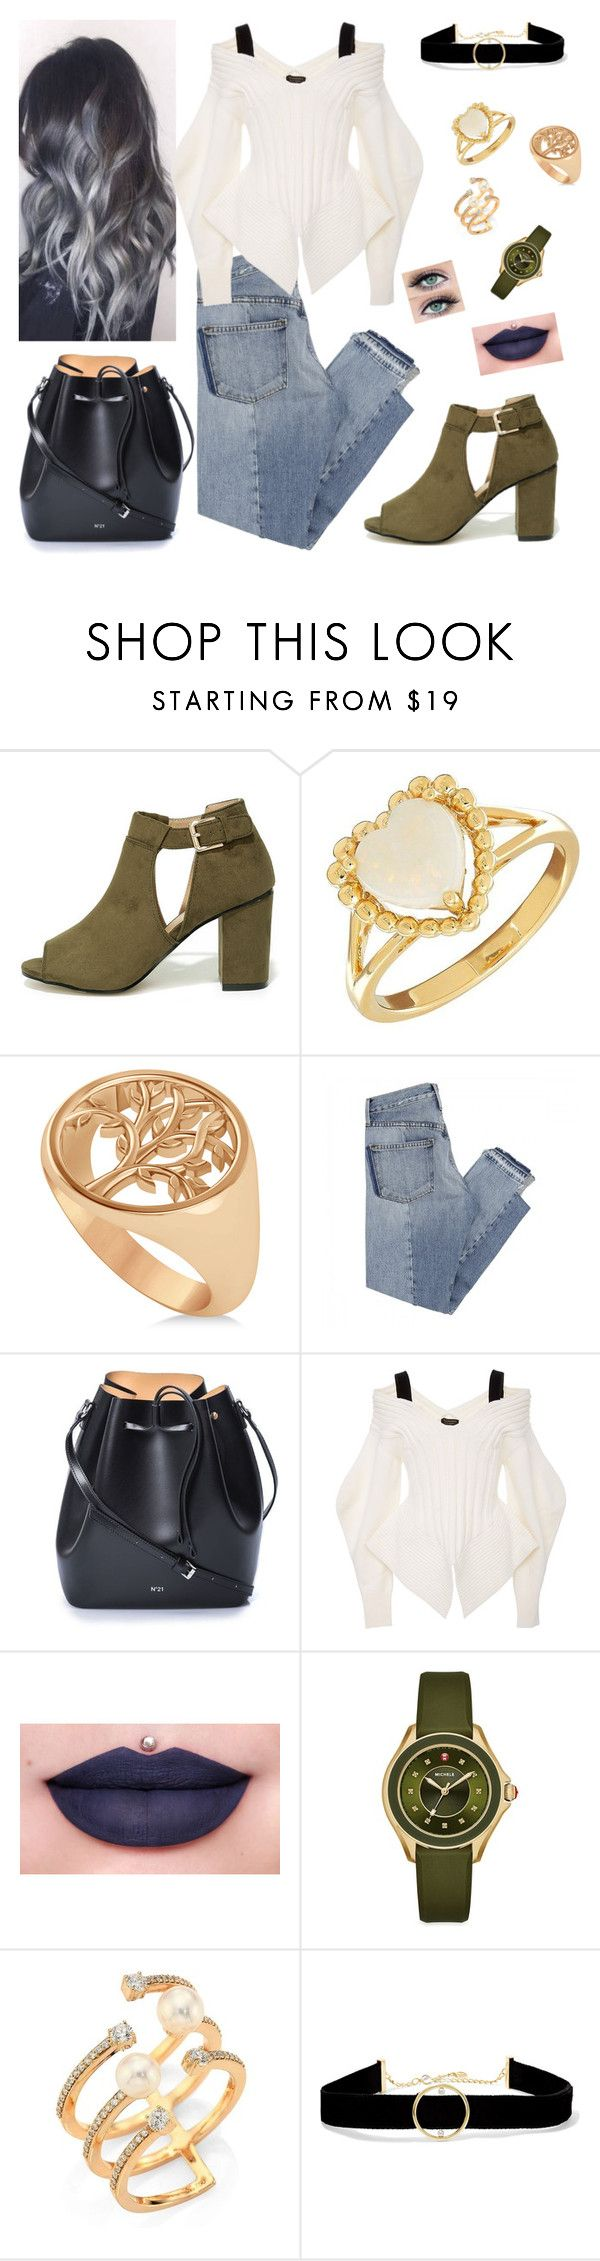 """Sem título #1142"" by anaritaferreira on Polyvore featuring moda, Mixx Shuz, Lord & Taylor, Allurez, Mix Nouveau, N°21, Burberry, Jeffree Star, Michele e Hueb"